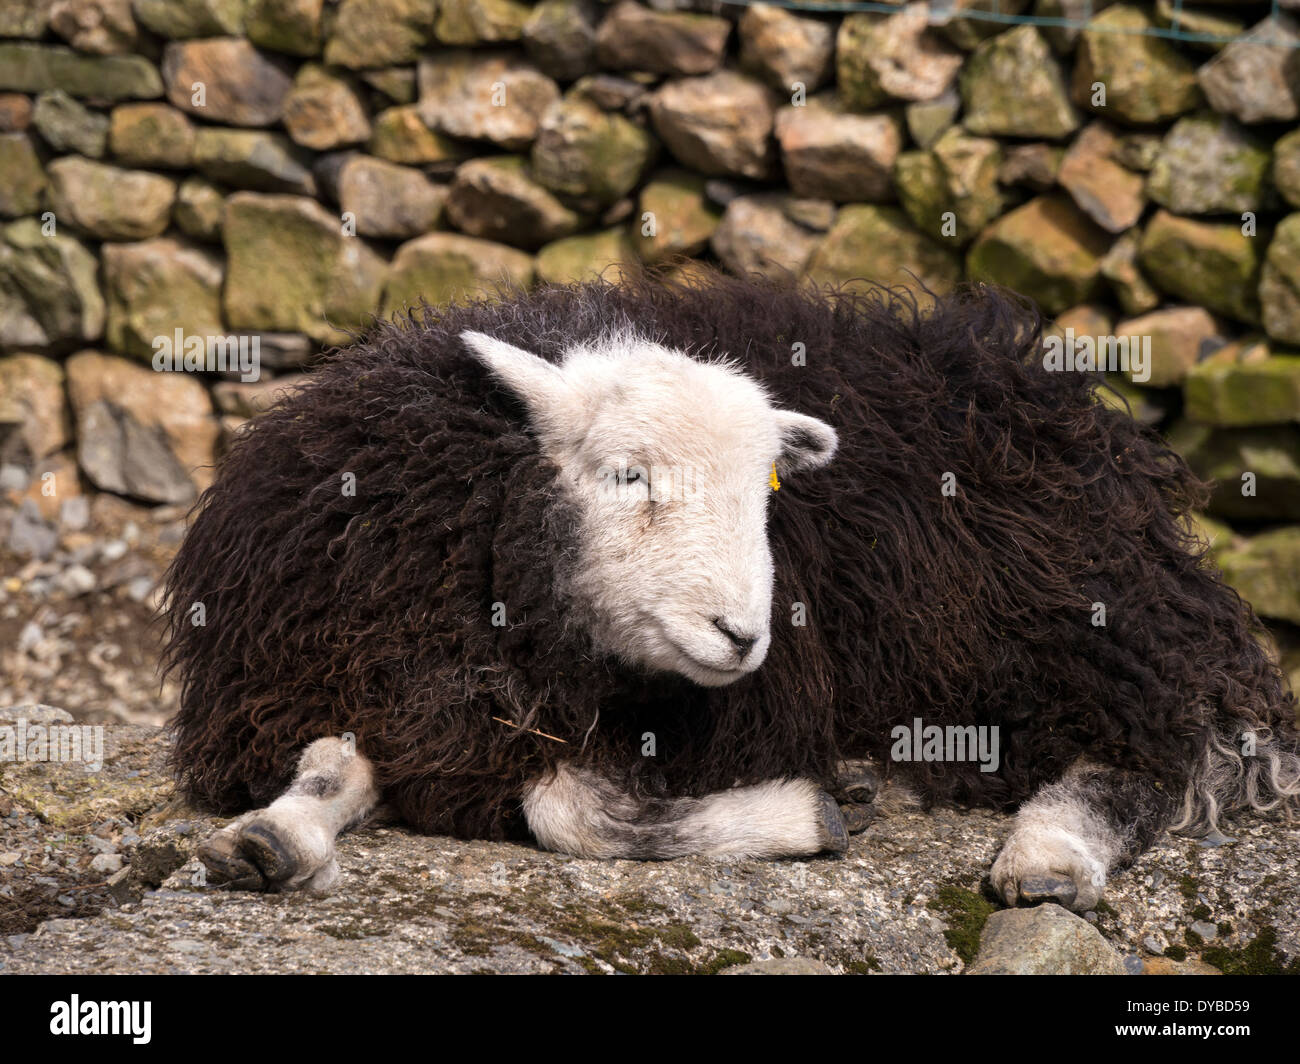 Black And White Sheep Stock Photos  for Sheep Face Black And White  165jwn